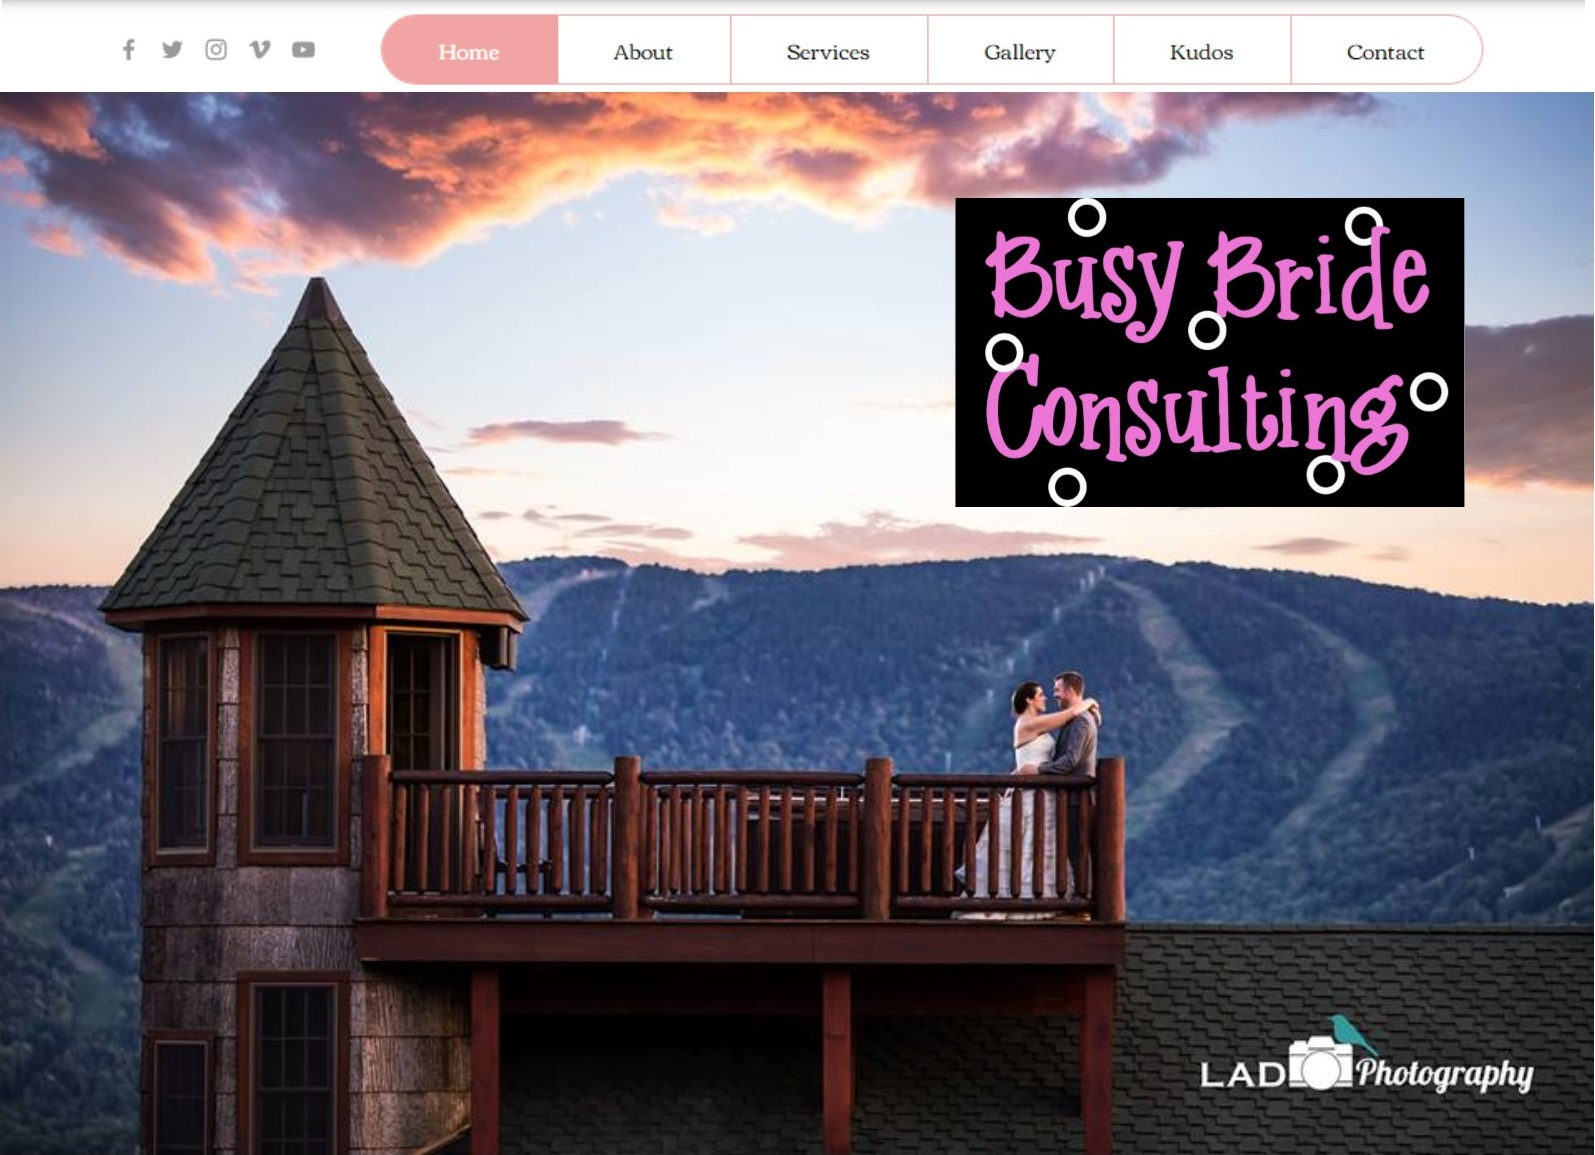 Busy Bride Consulting